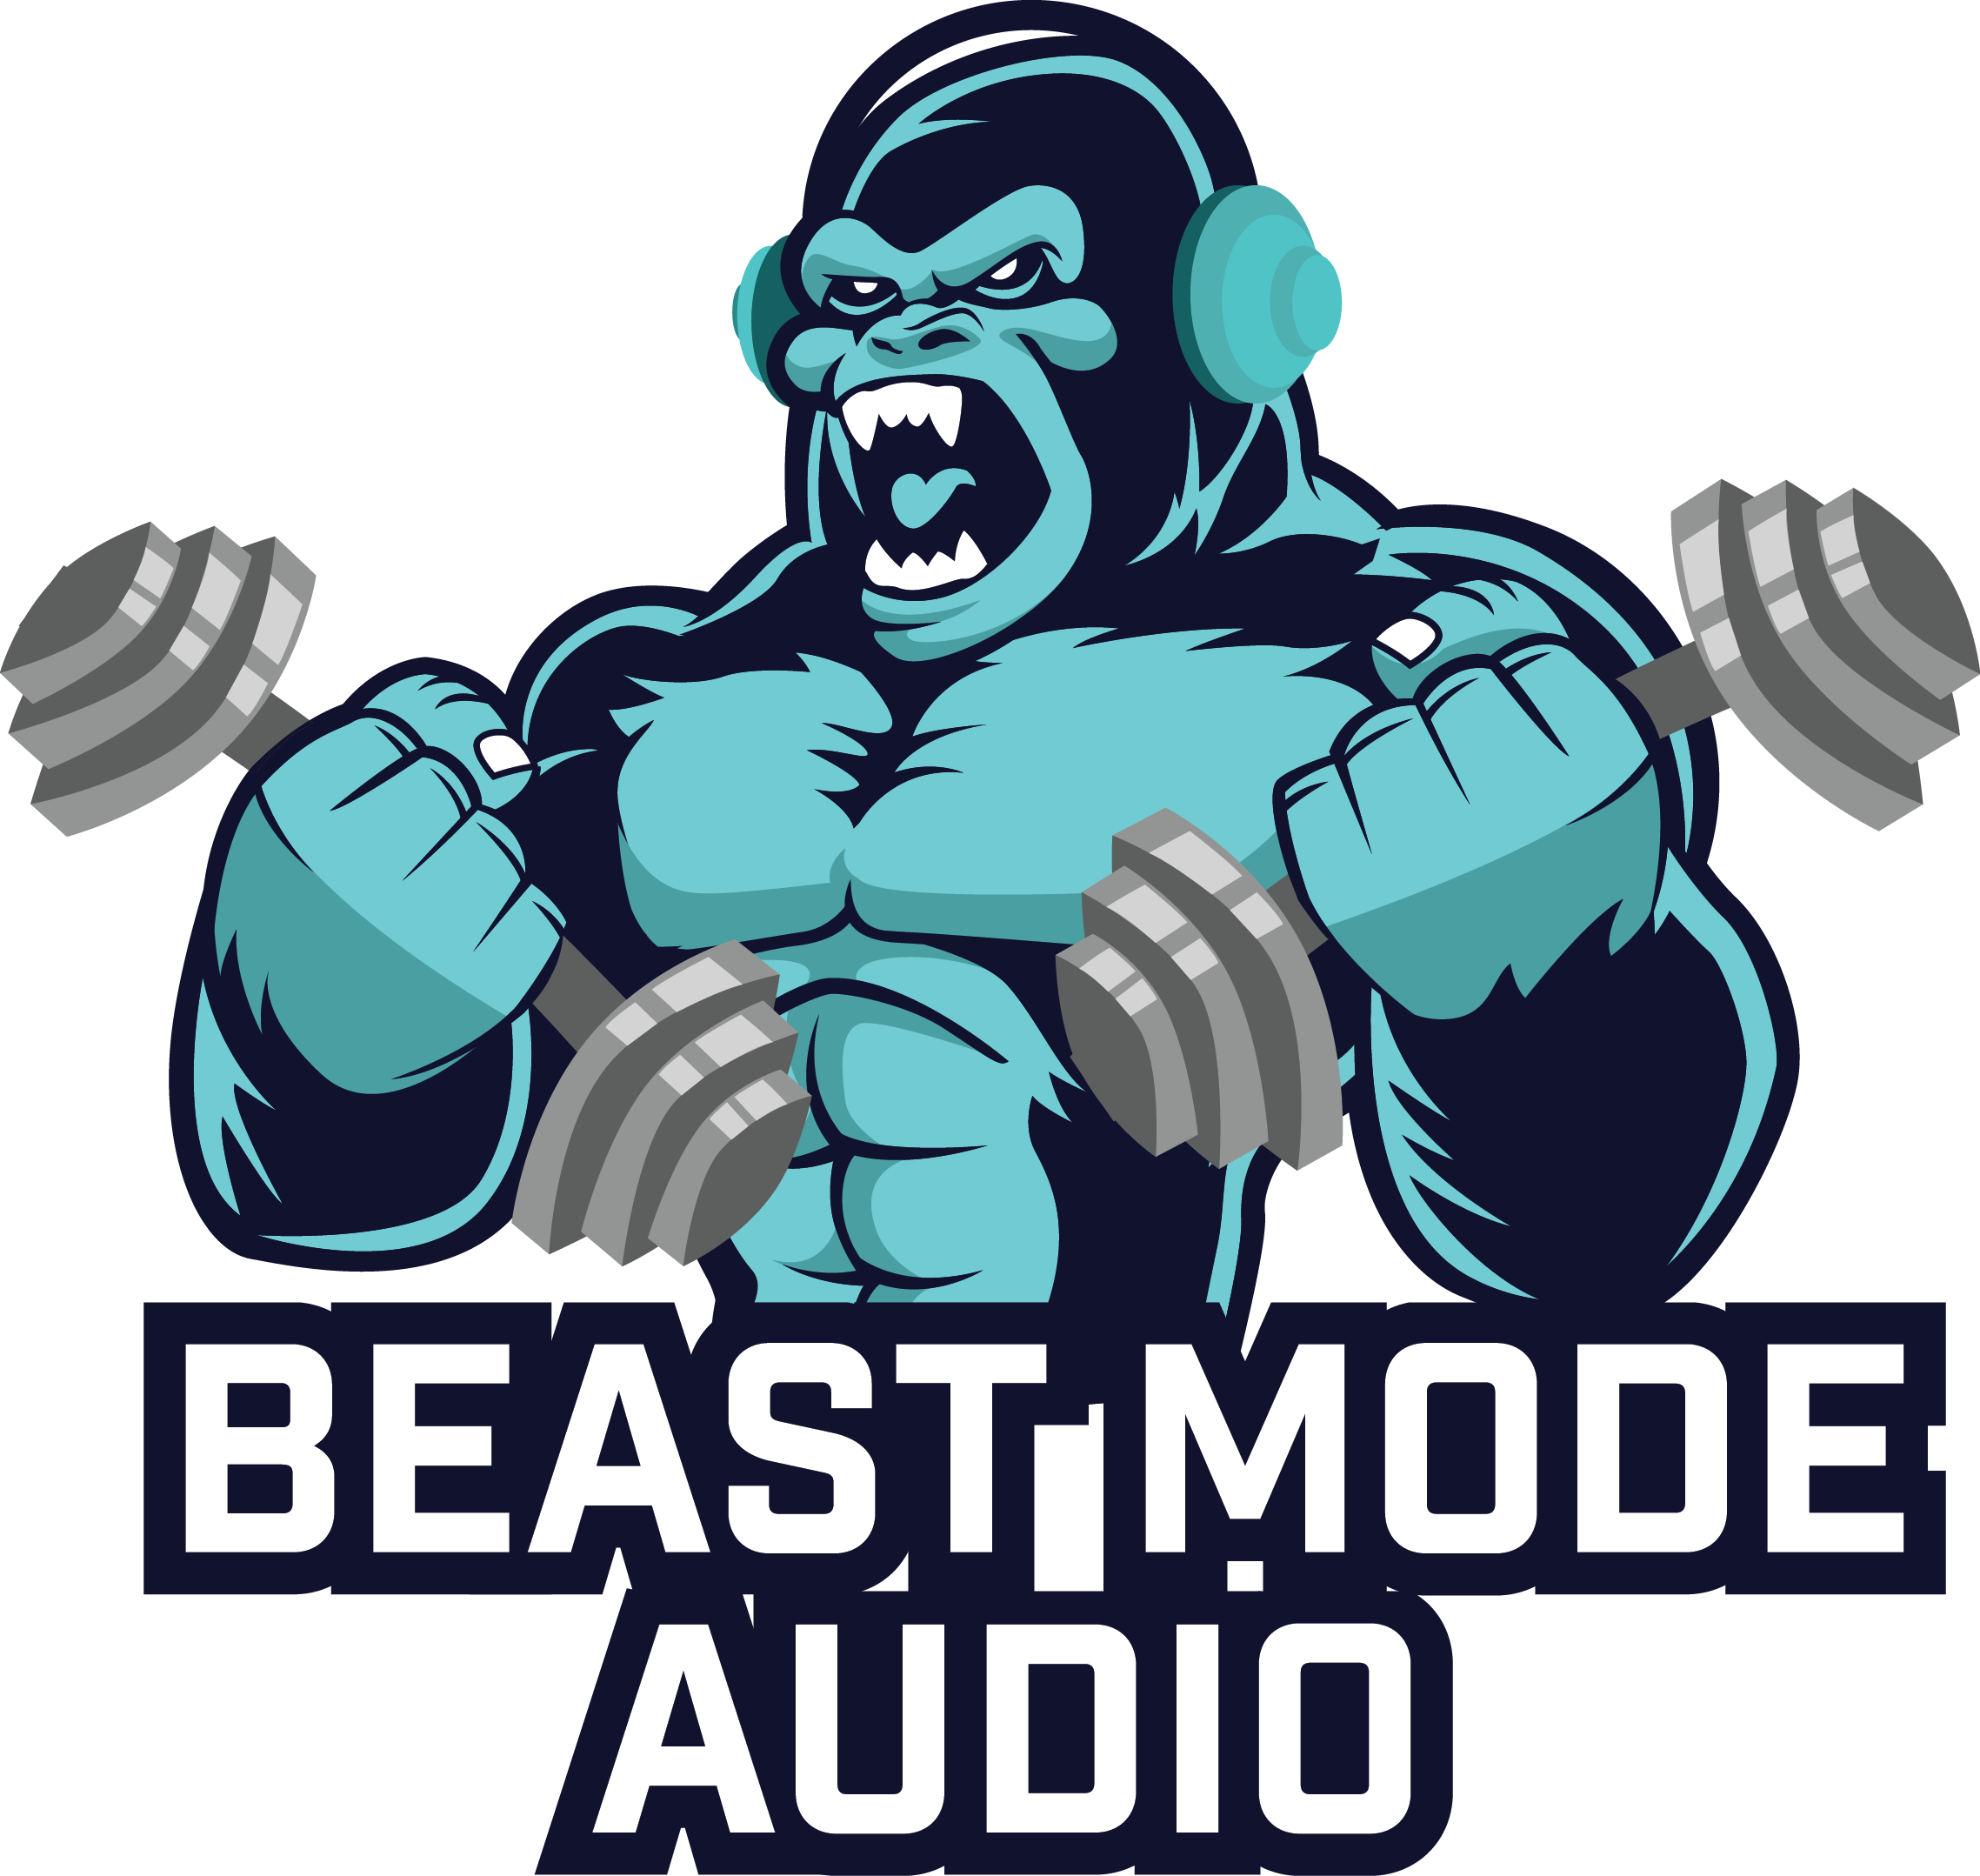 Audio book clipart graphic black and white stock Beast Mode Audio by Joel Beasley graphic black and white stock